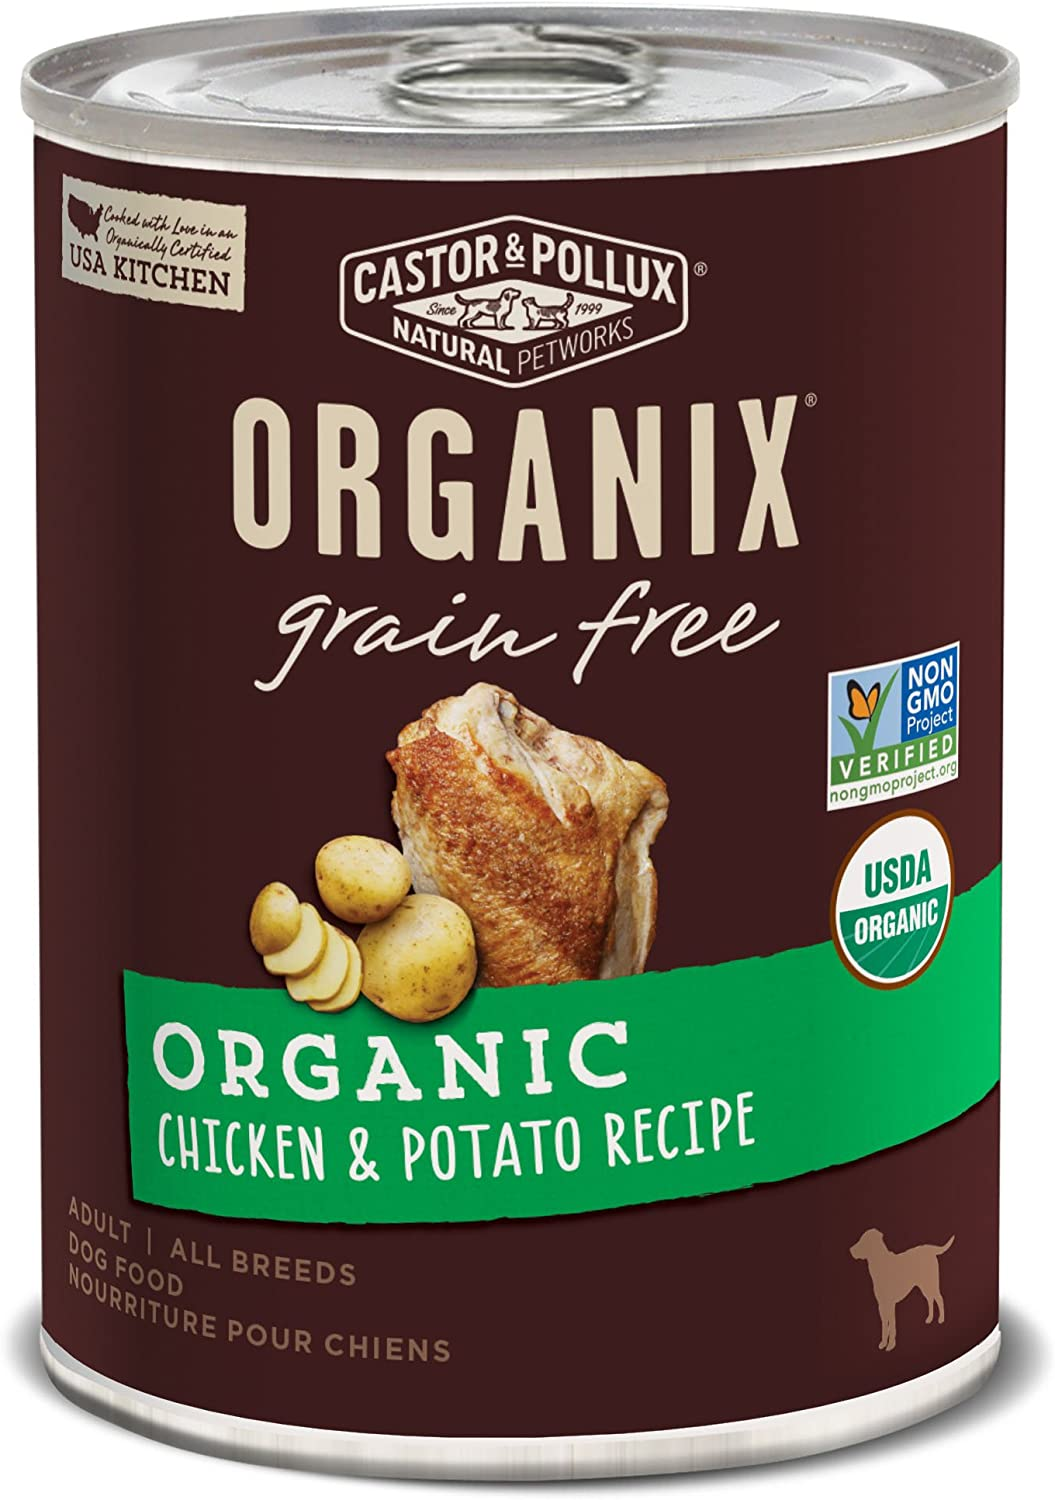 Castor & Pollux Organix Grain Free Organic Chicken & Potato Recipe Adult Canned Dog Food, (12) 12..7oz cans